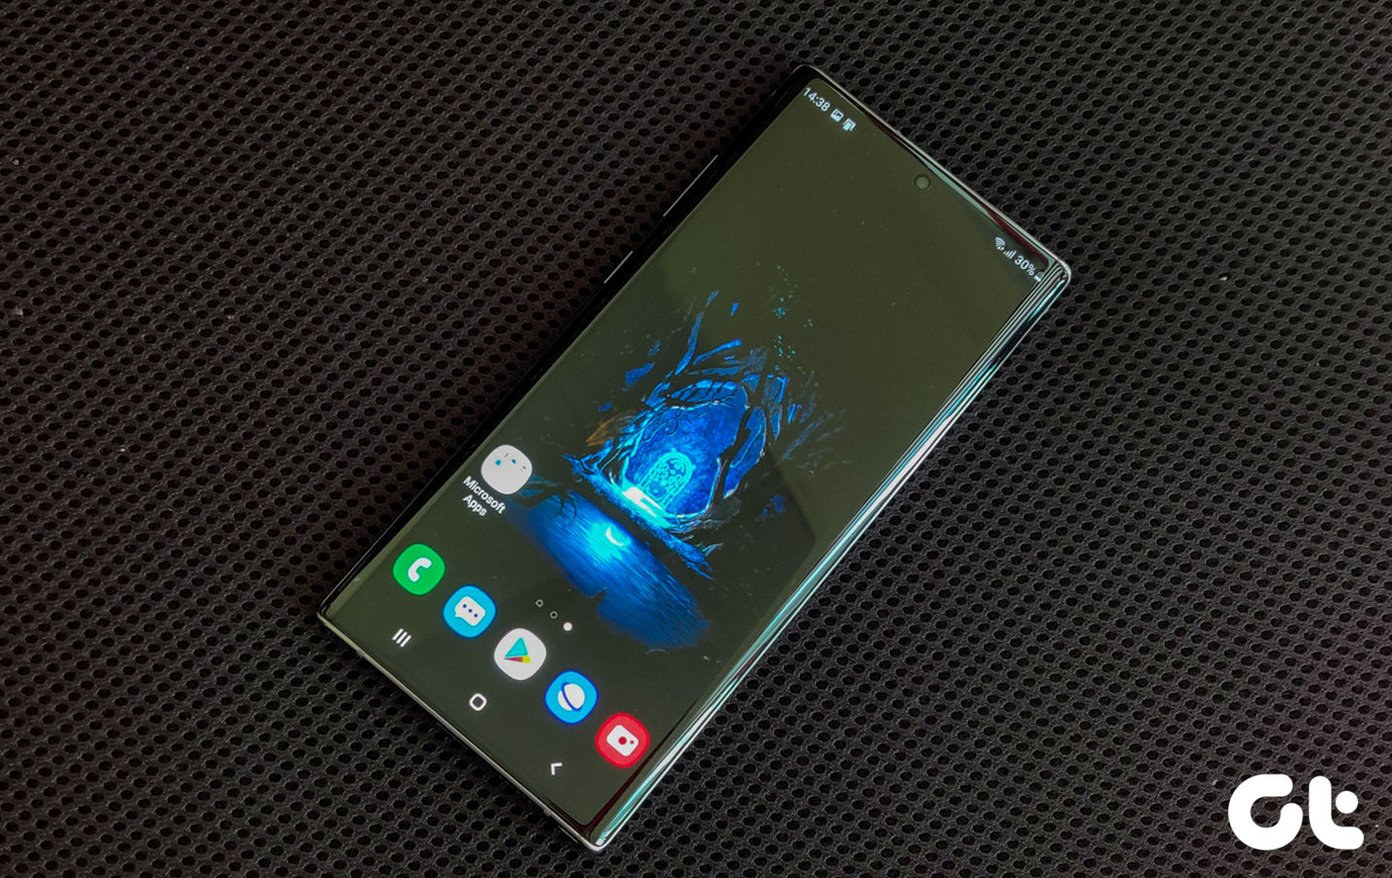 Best Wallpaper Apps For The Samsung Galaxy Note 10 Best Wallpaper For Samsung Note 9 3108810 Hd Wallpaper Backgrounds Download